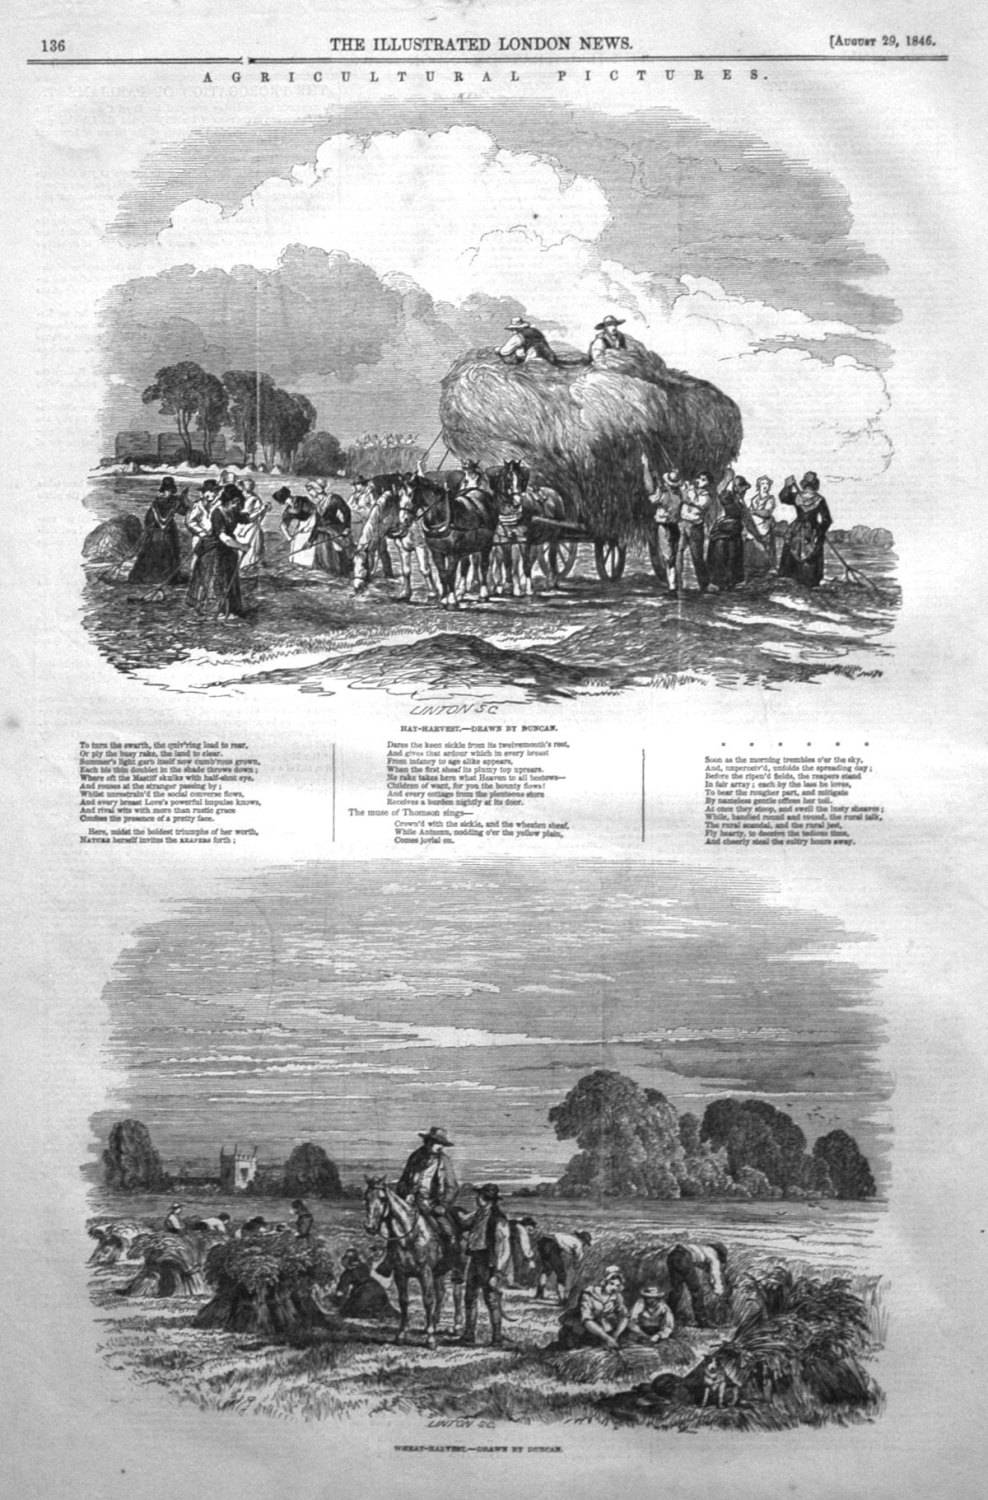 Agricultural Pictures. 1846